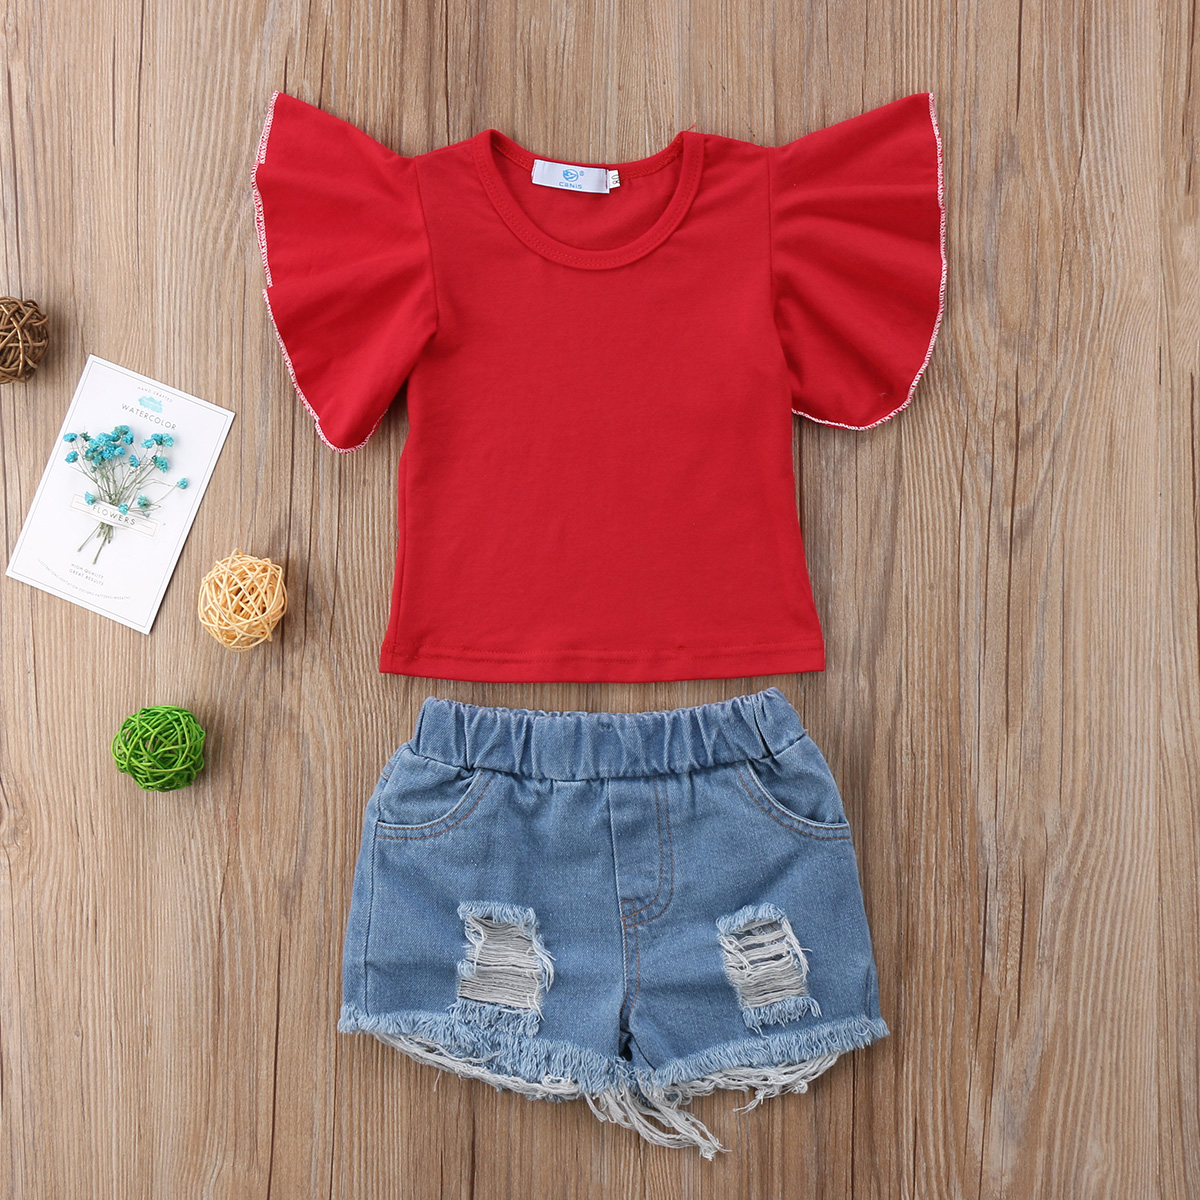 Cute Toddler Kids Baby Girls Short Sleeve Solid O-Neck Tops T-shirt Denim Shorts Pants Outfits Set Clothes